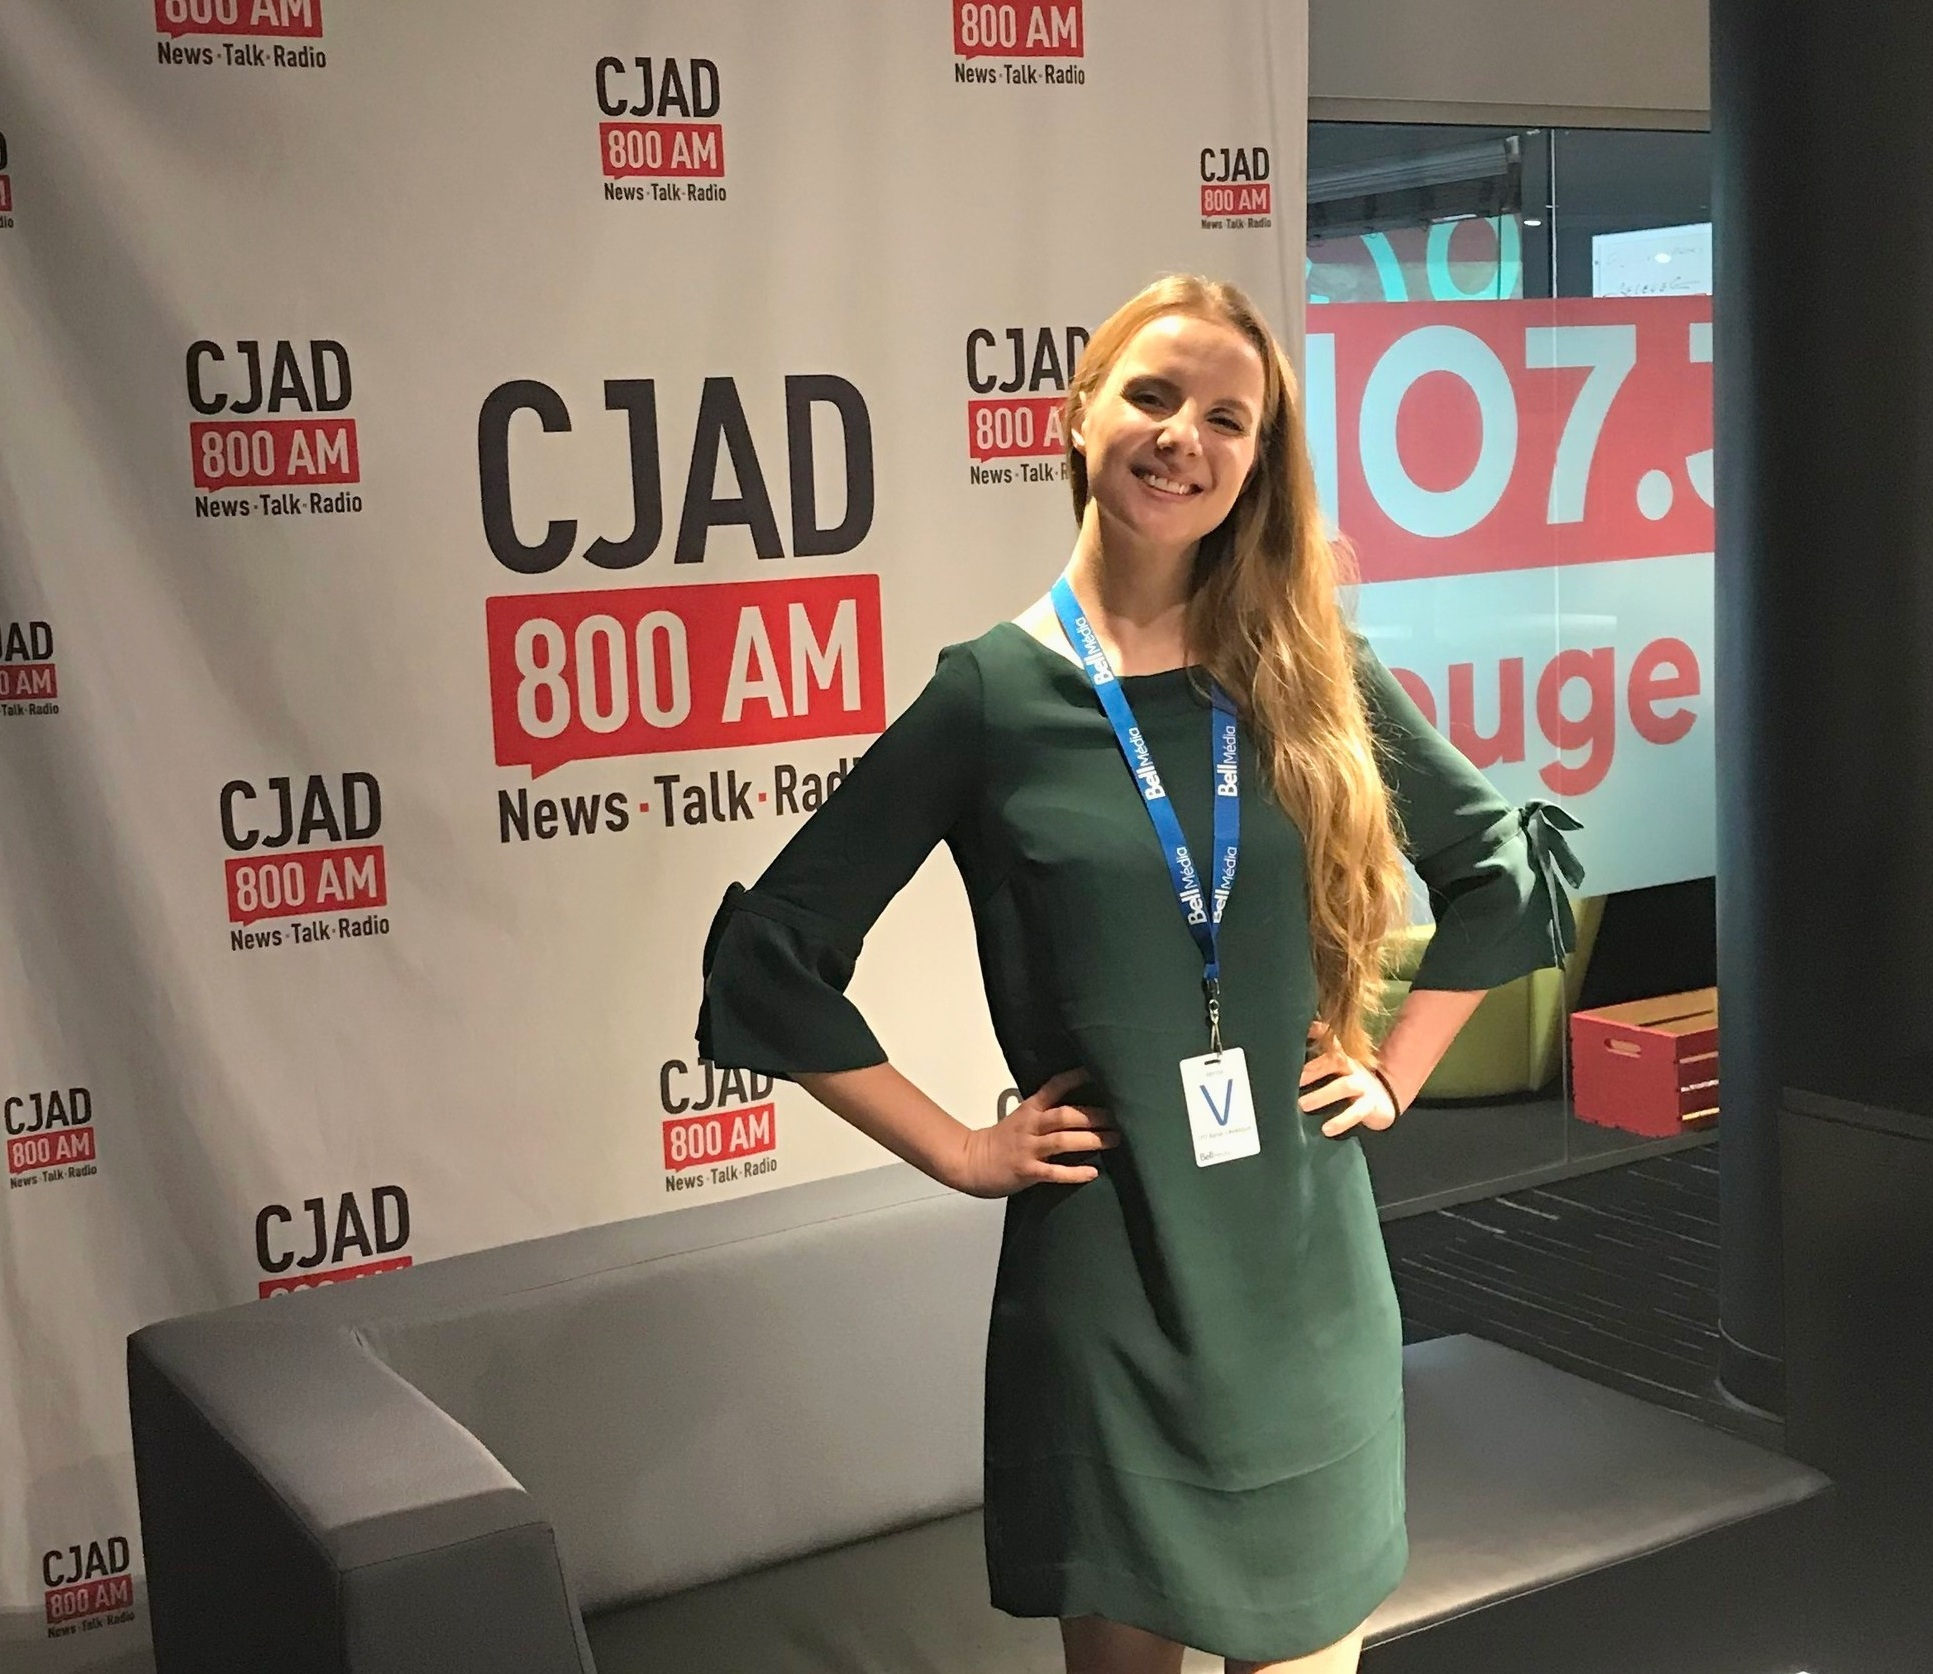 CJAD Radio - Radio talk focus: How to declutter and organize your life. Listen to the full episode above.